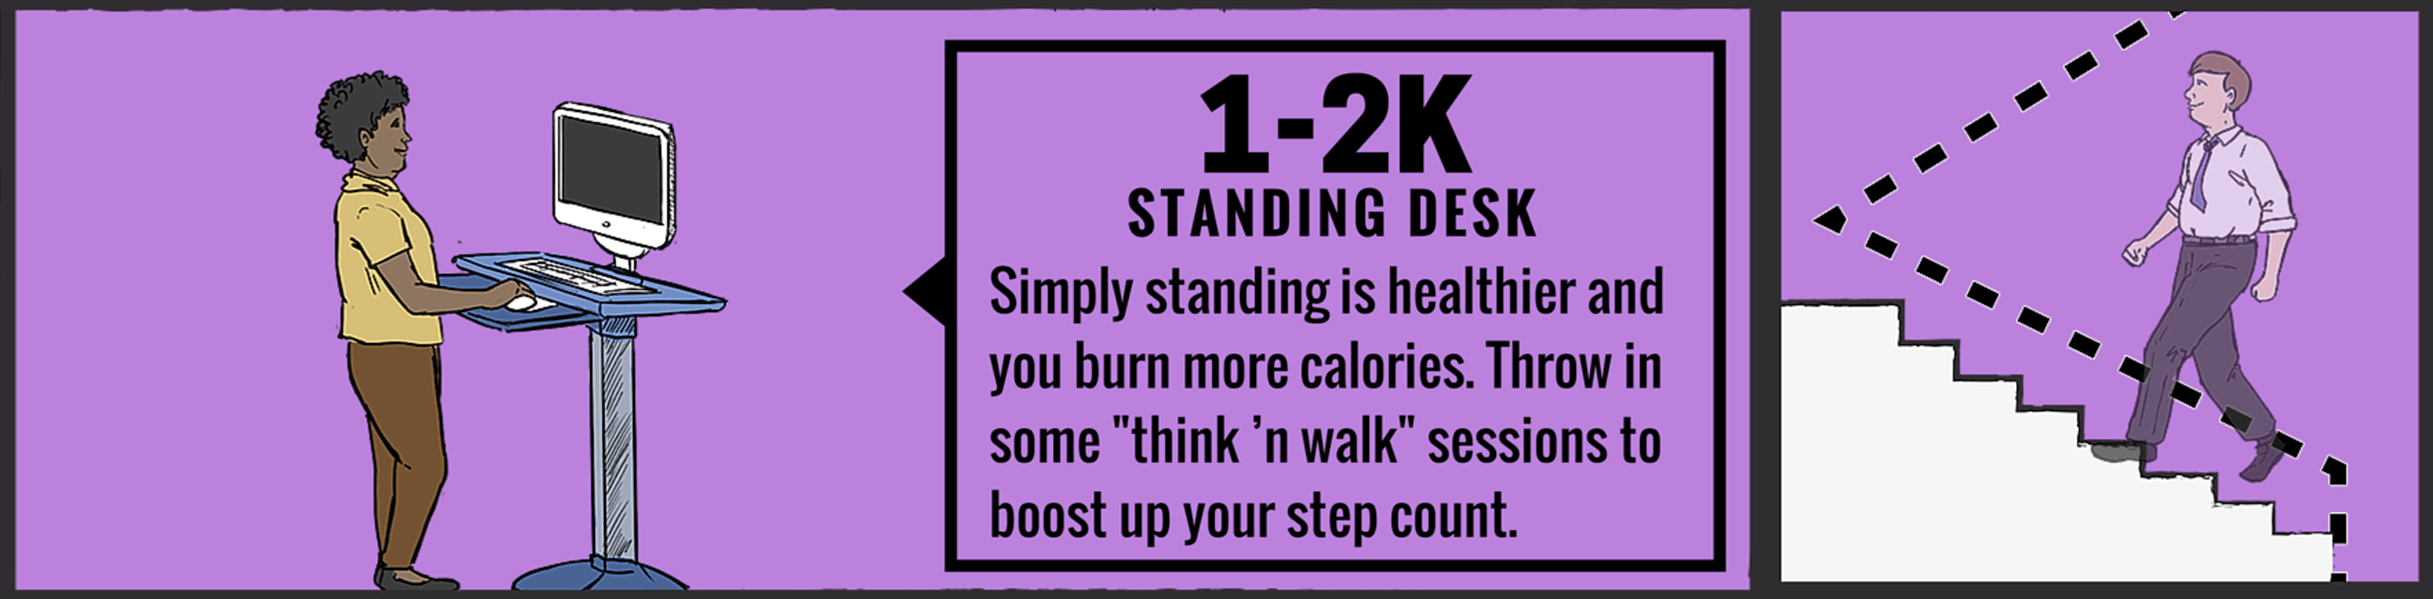 Workout at Work: Standing Desk